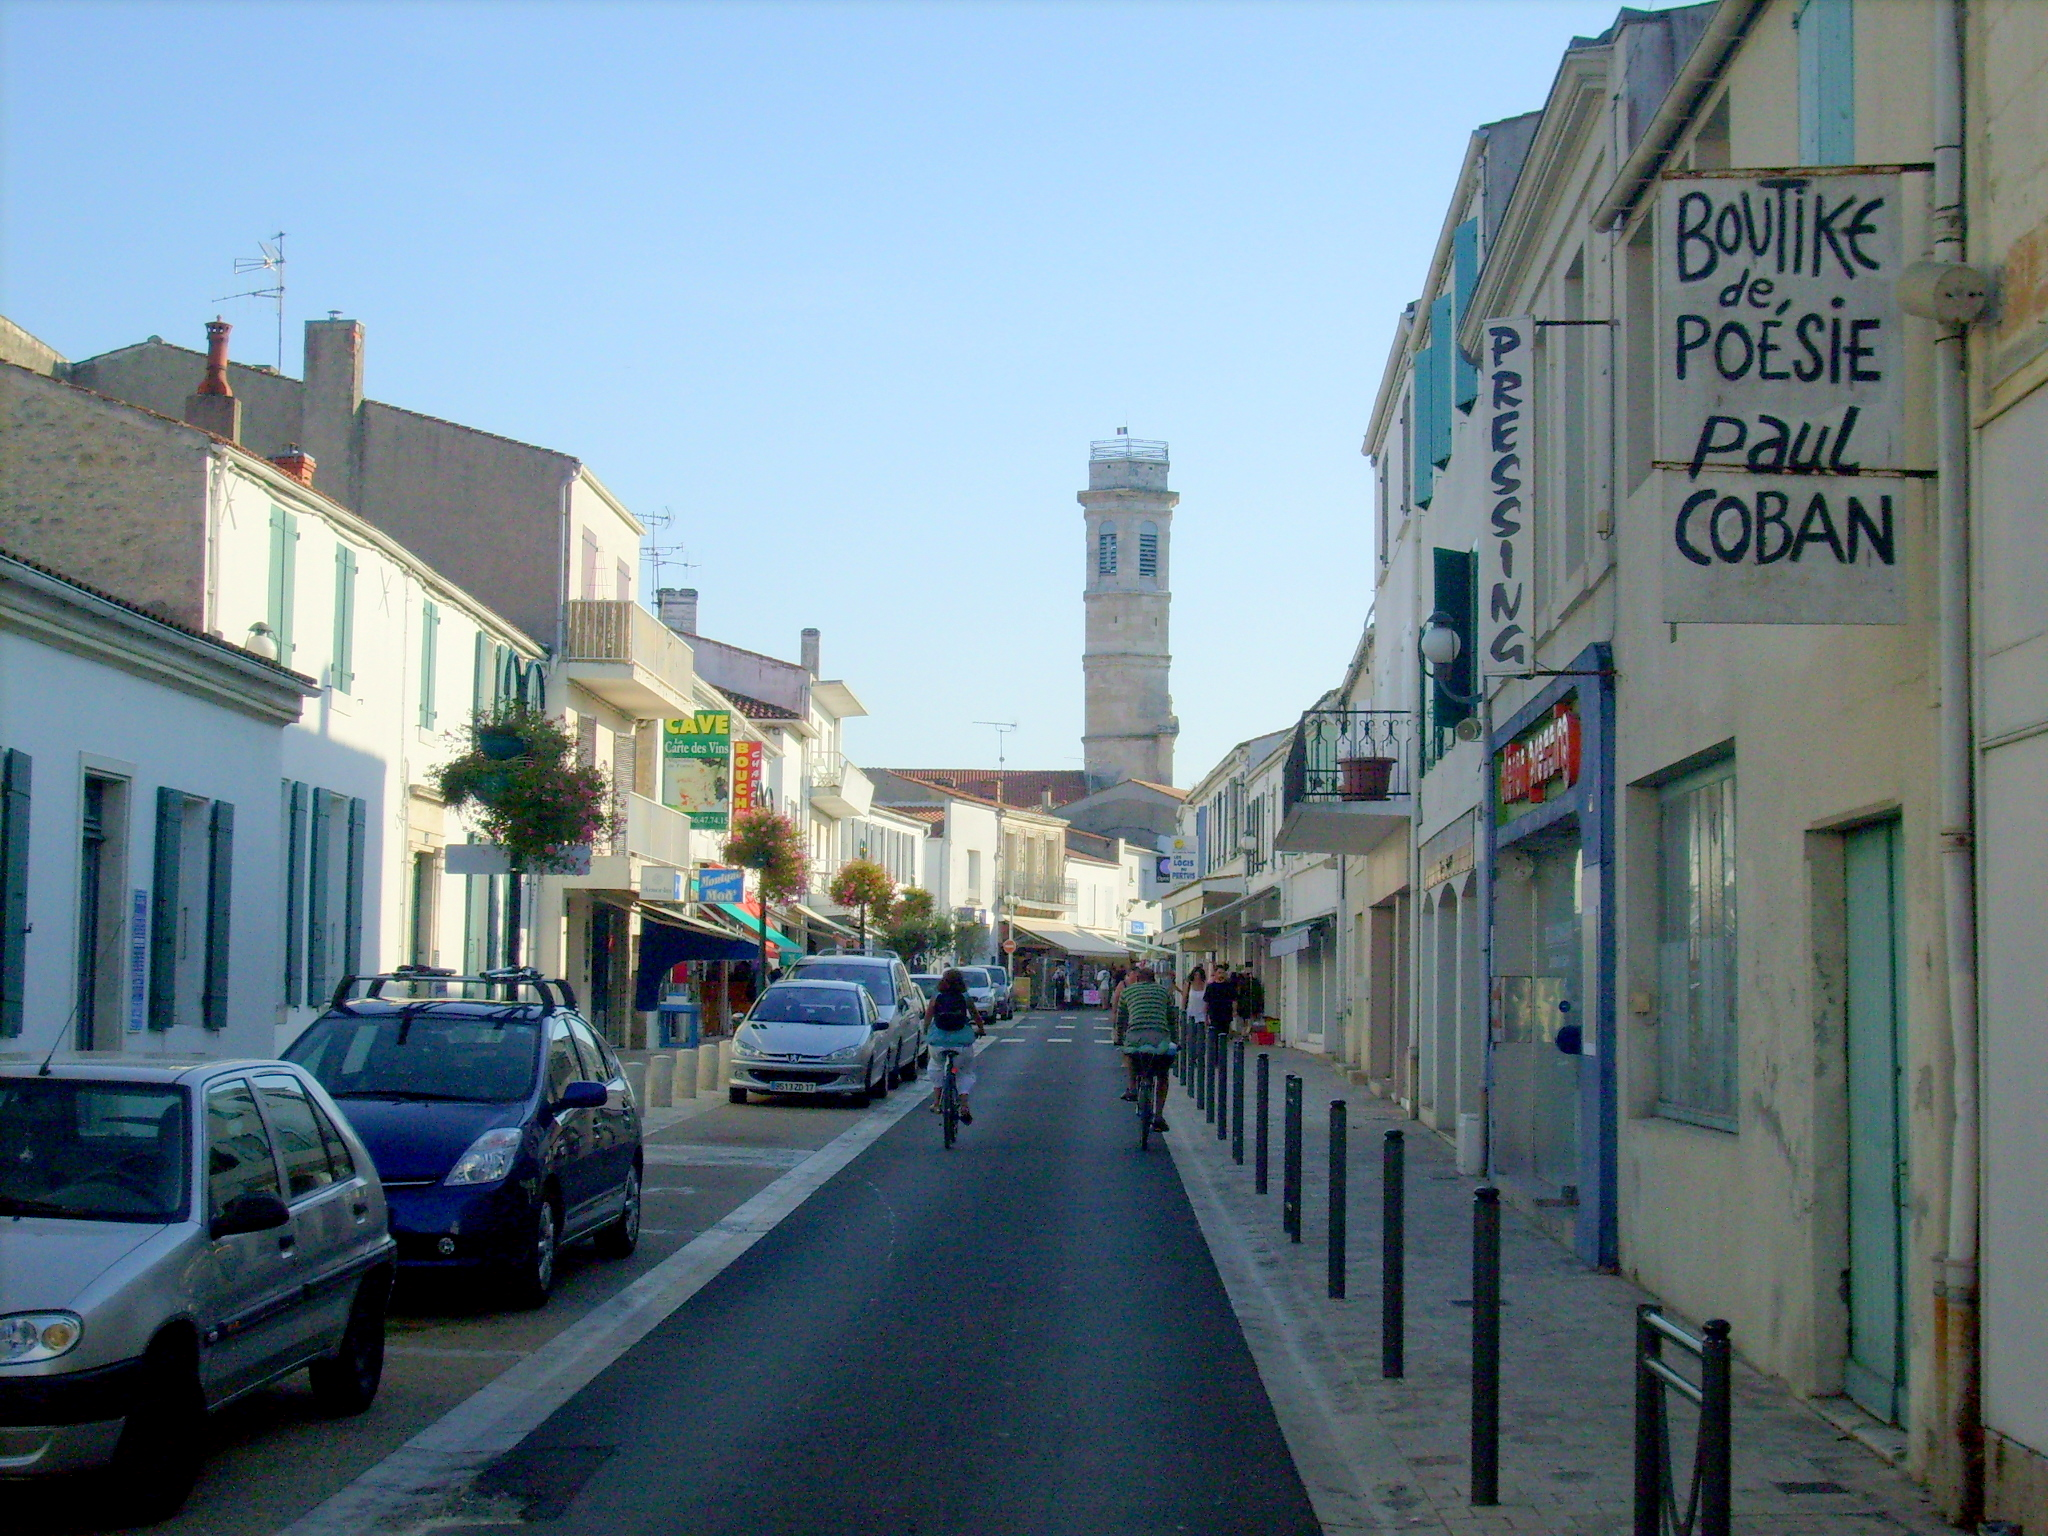 Unit urbaine de saint pierre d 39 ol ron wikiwand - Office de tourisme saint pierre d oleron ...